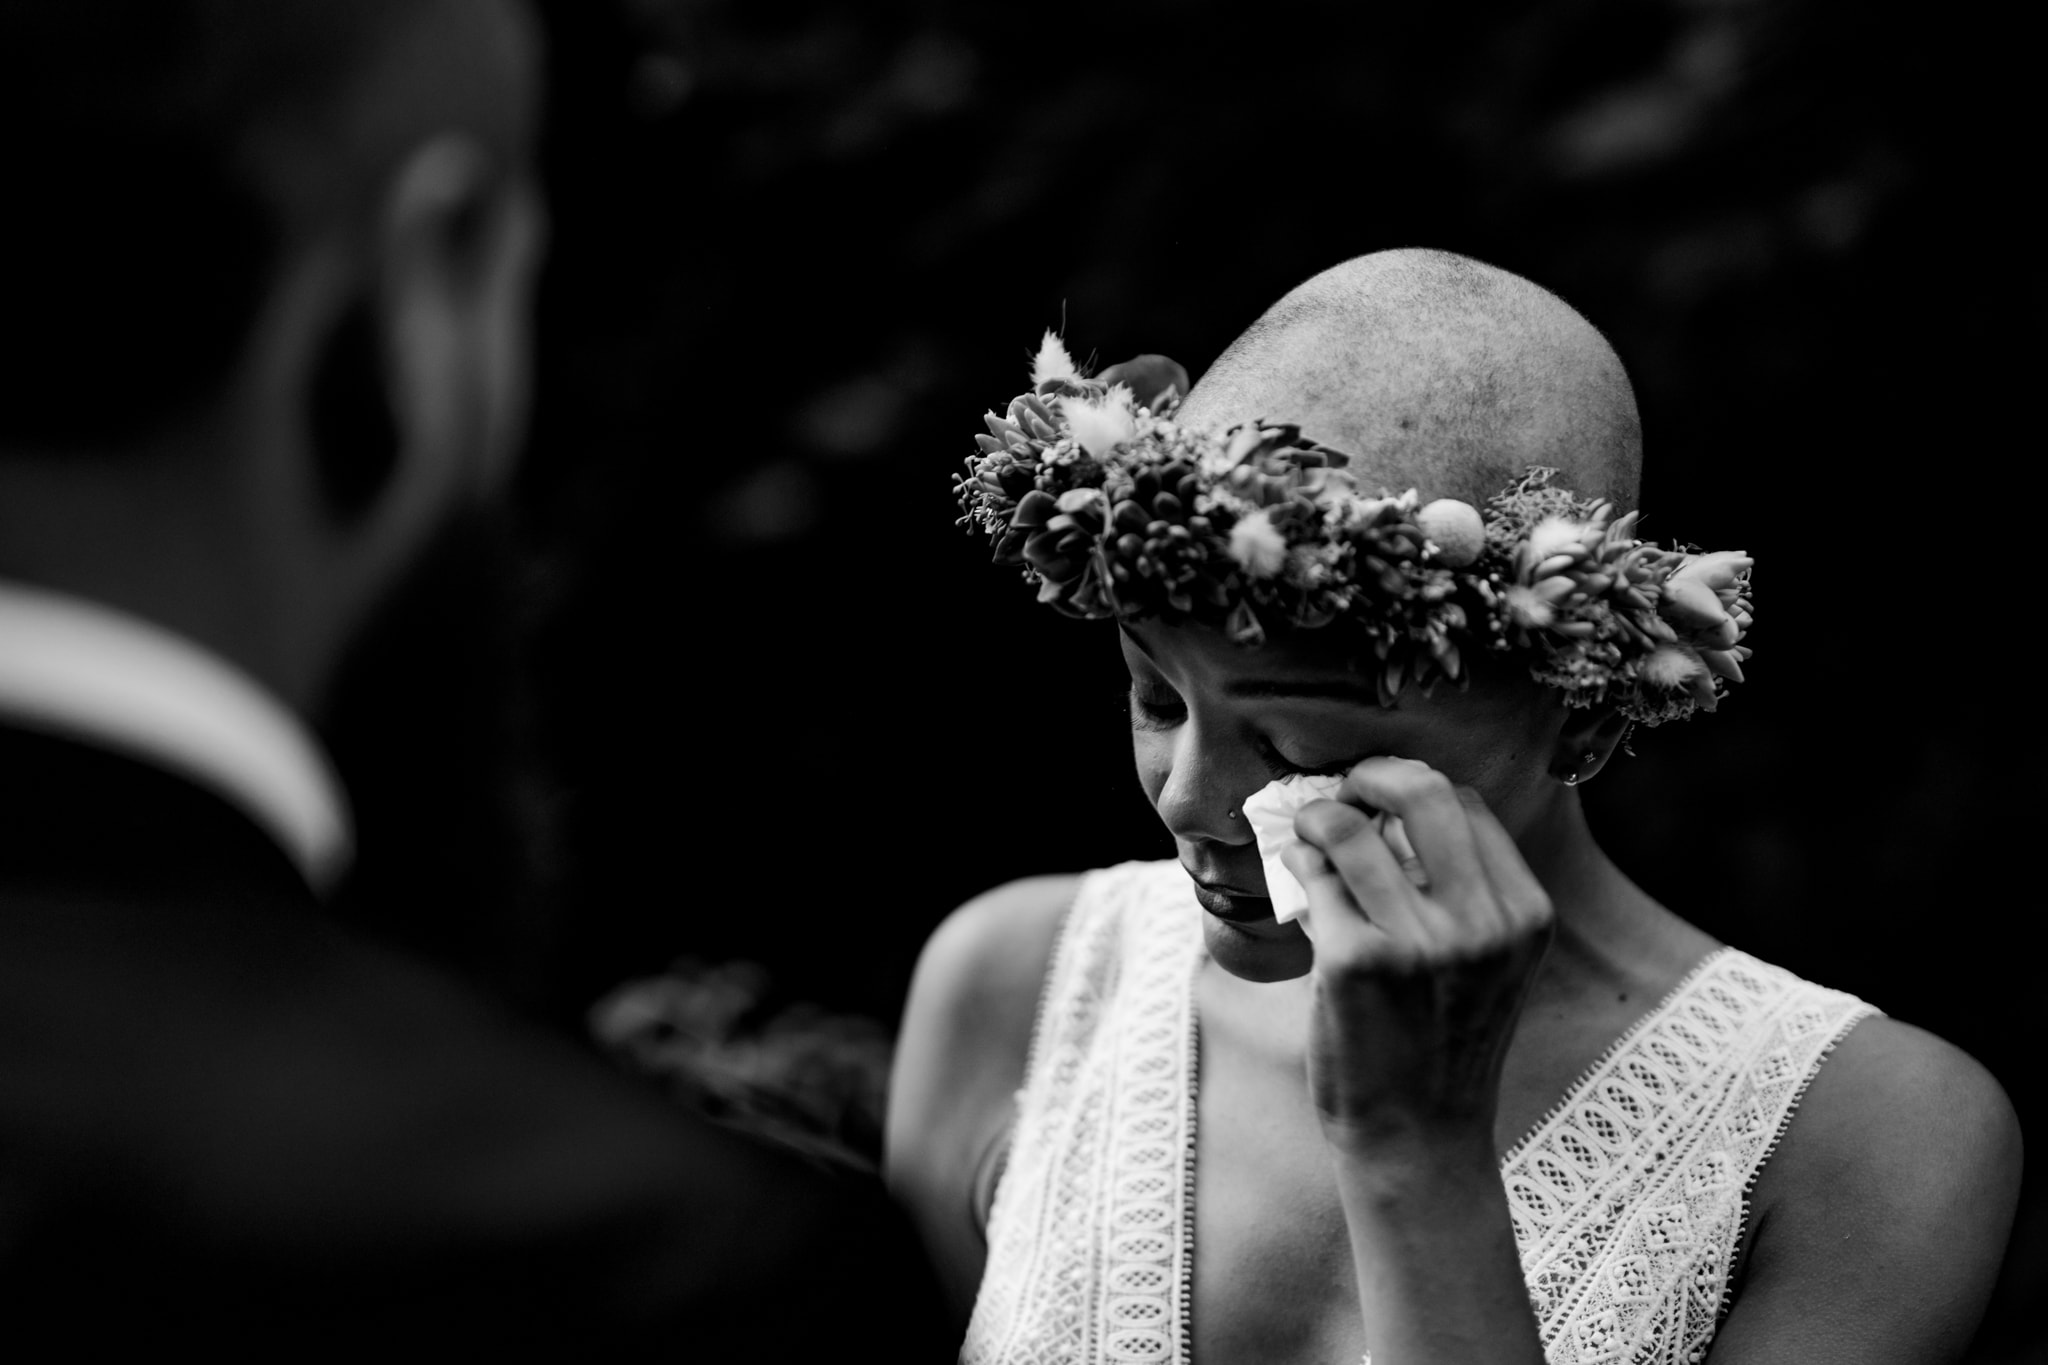 Bride wipes a tear from her eye during wedding ceremony in Cincinnati, Ohio